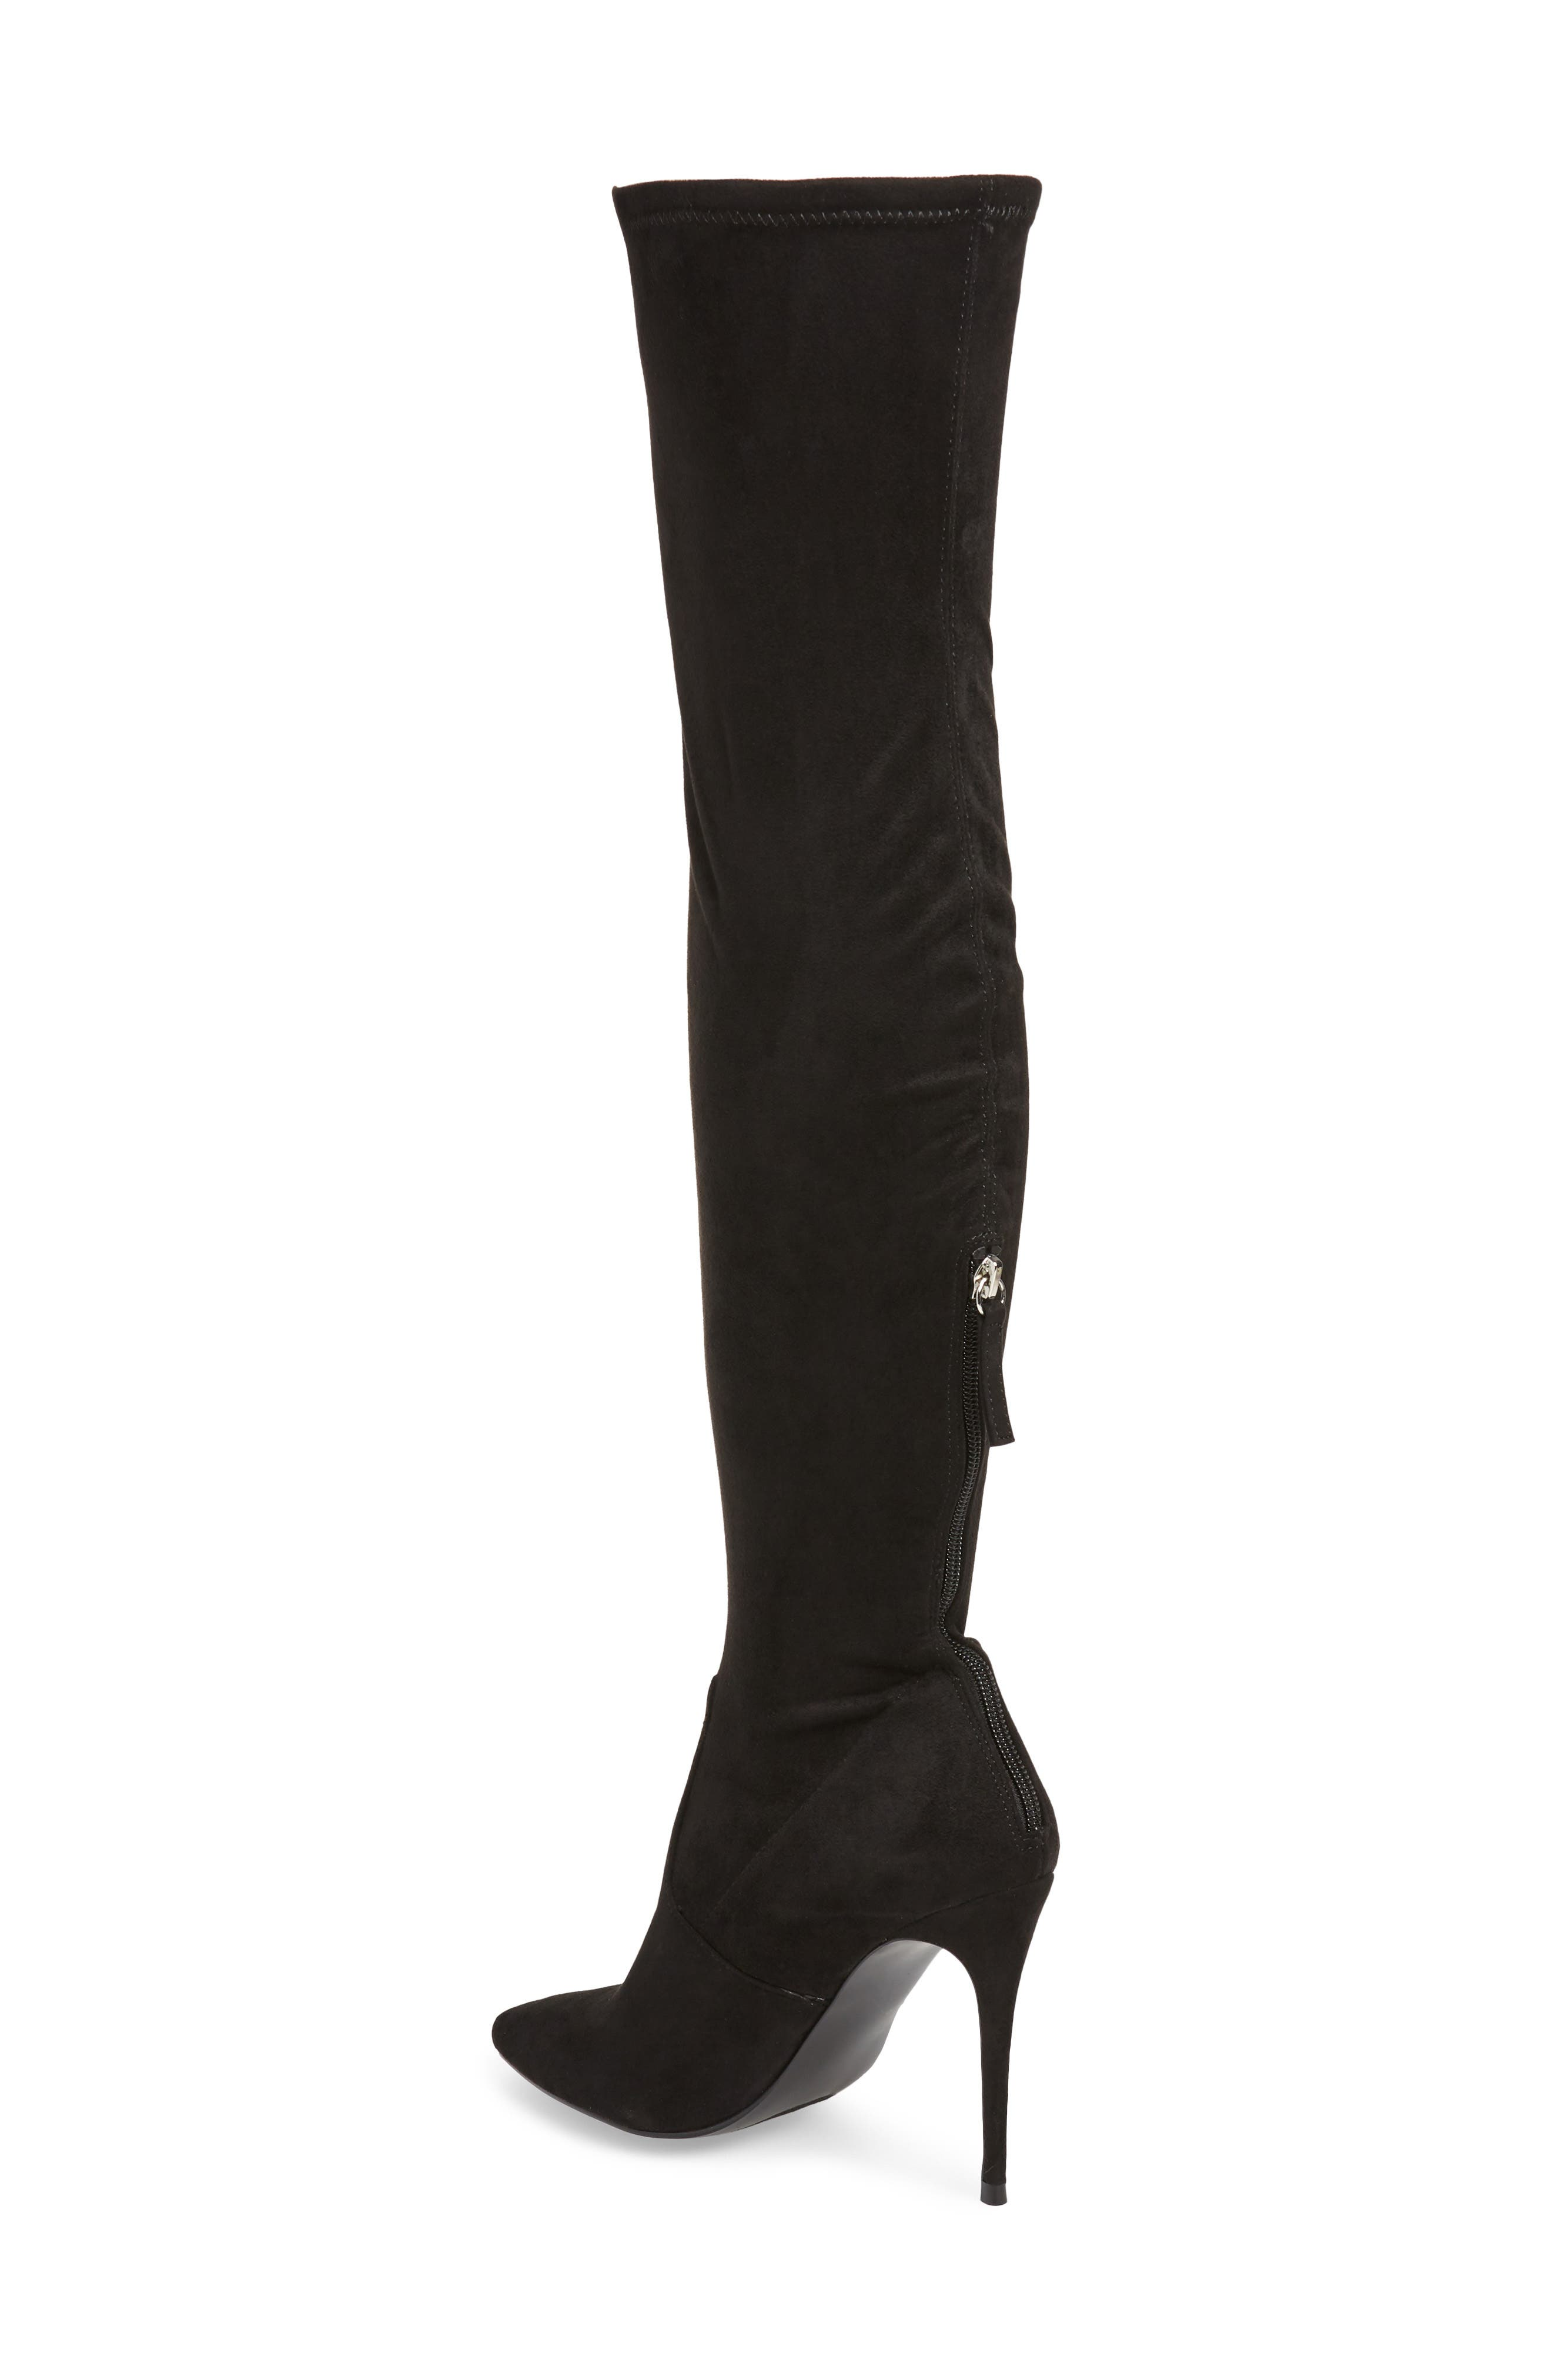 Devine Over the Knee Boot,                             Alternate thumbnail 2, color,                             BLACK SUEDE